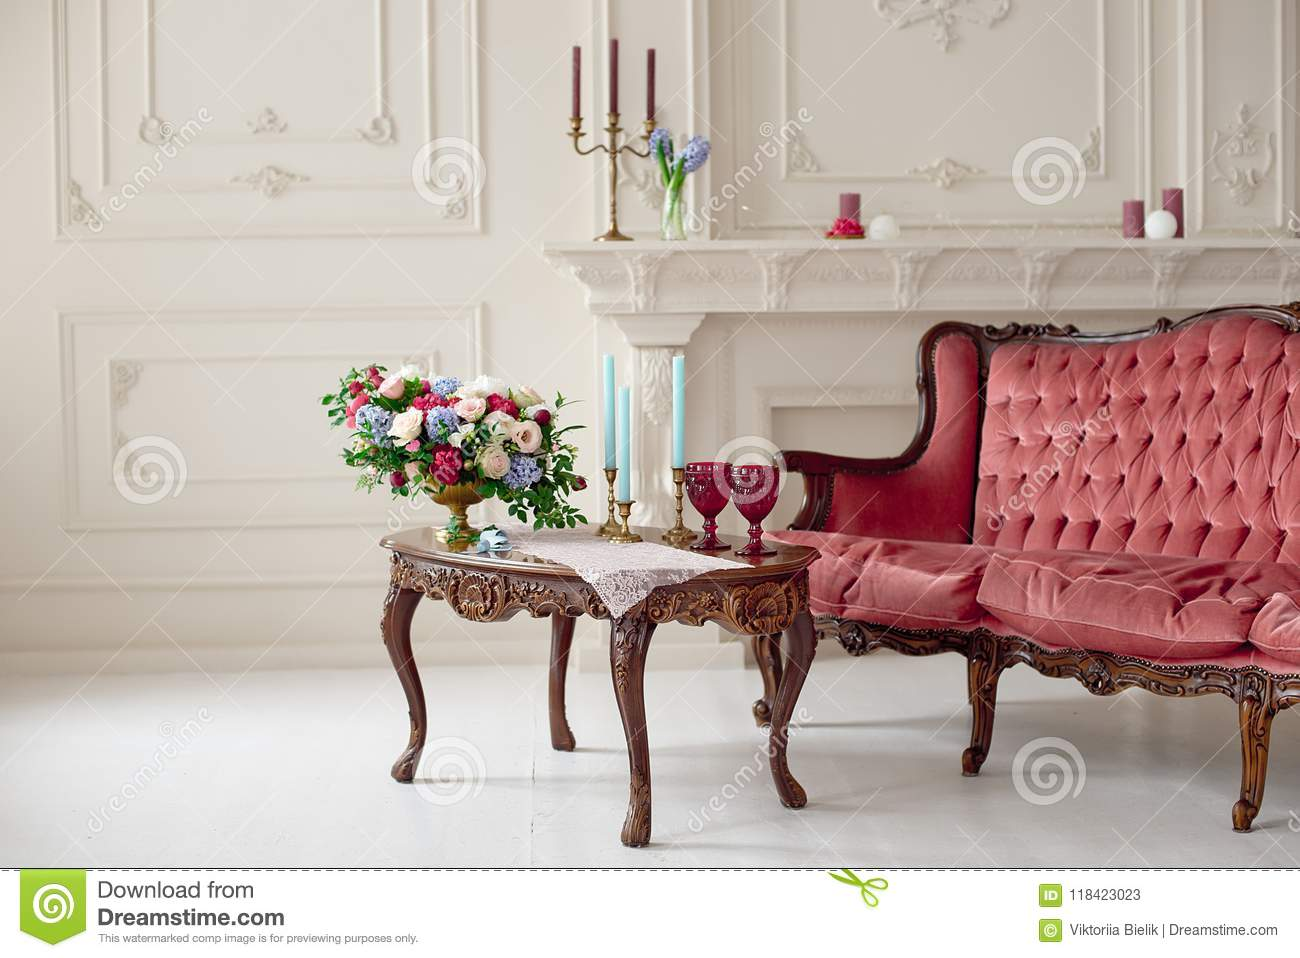 Pleasing Baroque Style Interior With Red Luxury Sofa And Table Stock Machost Co Dining Chair Design Ideas Machostcouk